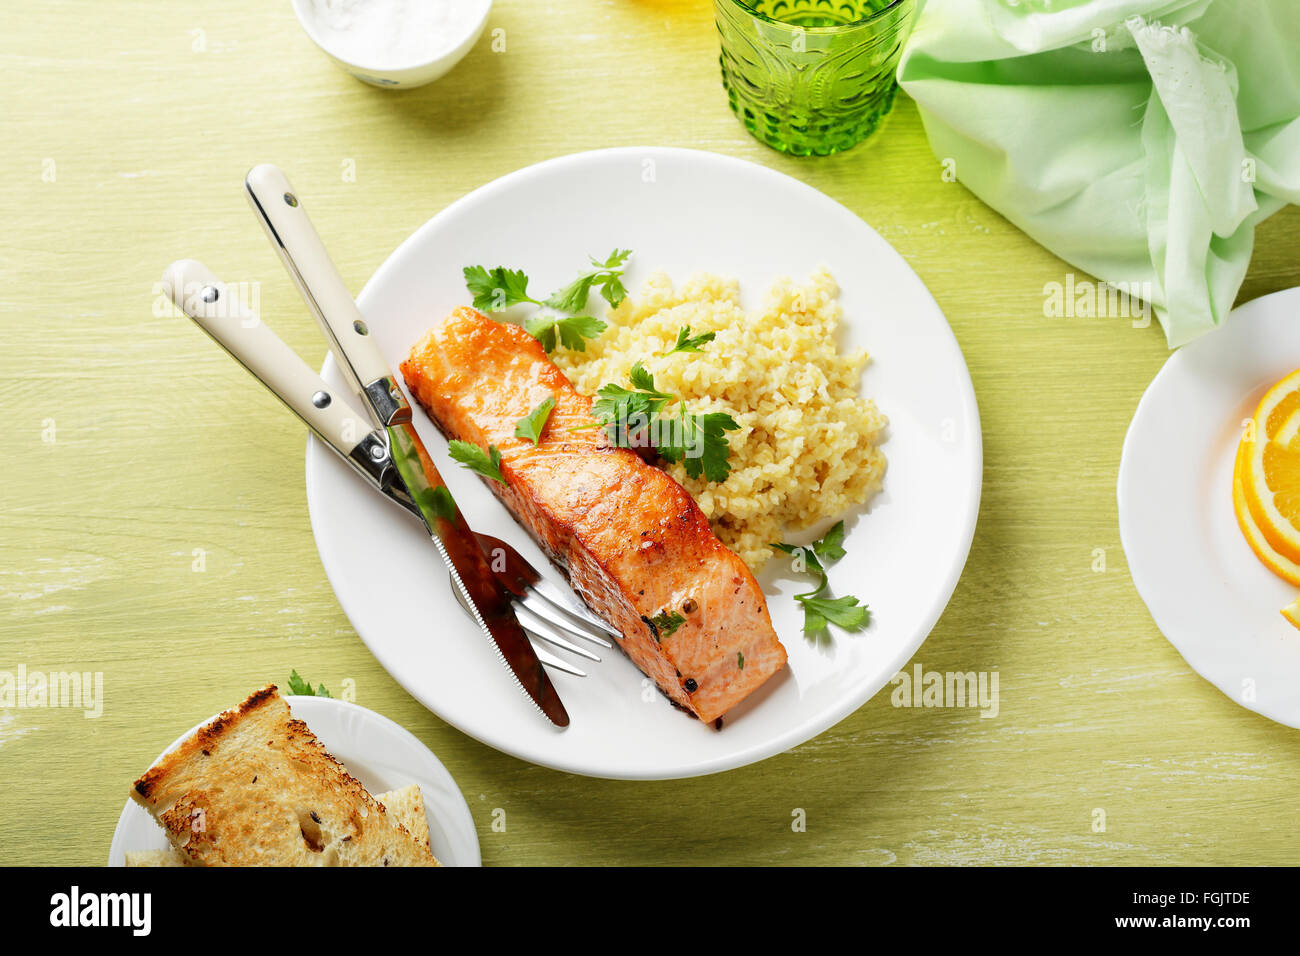 Plate With Food Top View Roasted Steak Salmon On Plate Food Top View Stock Photo